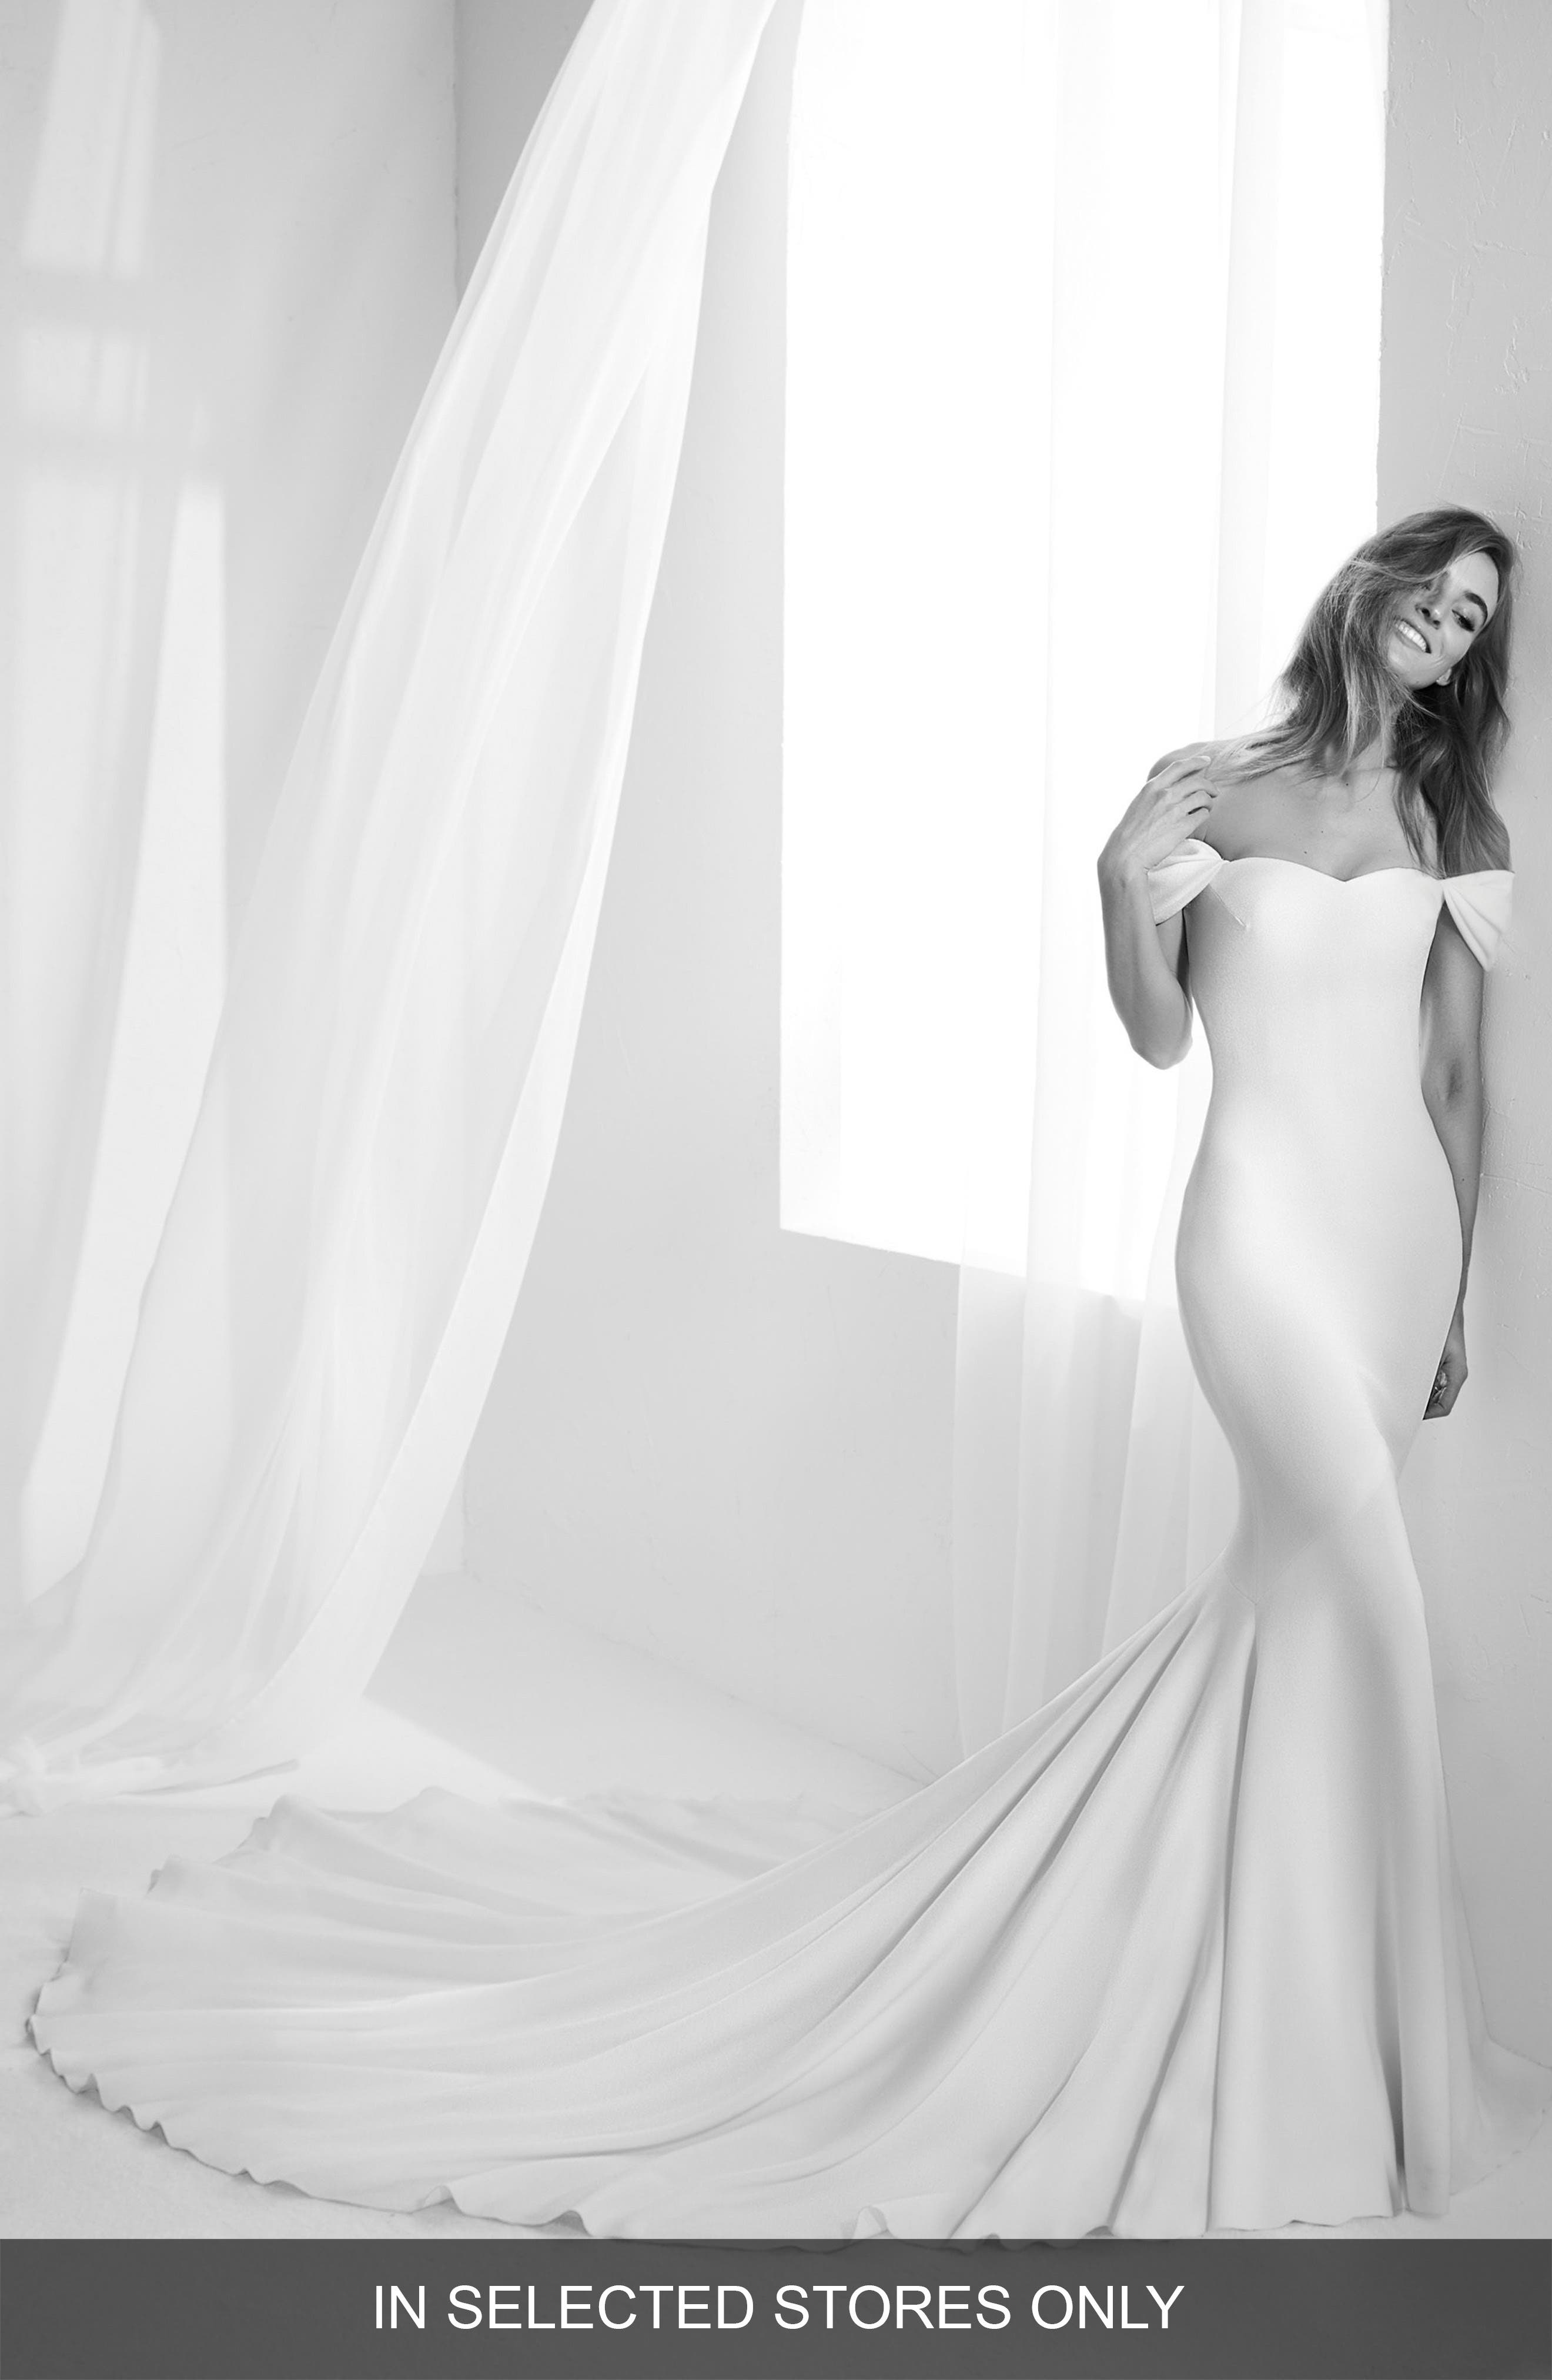 Alternate Image 1 Selected - Atelier Pronovias Raciela Sweetheart Mermaid Gown